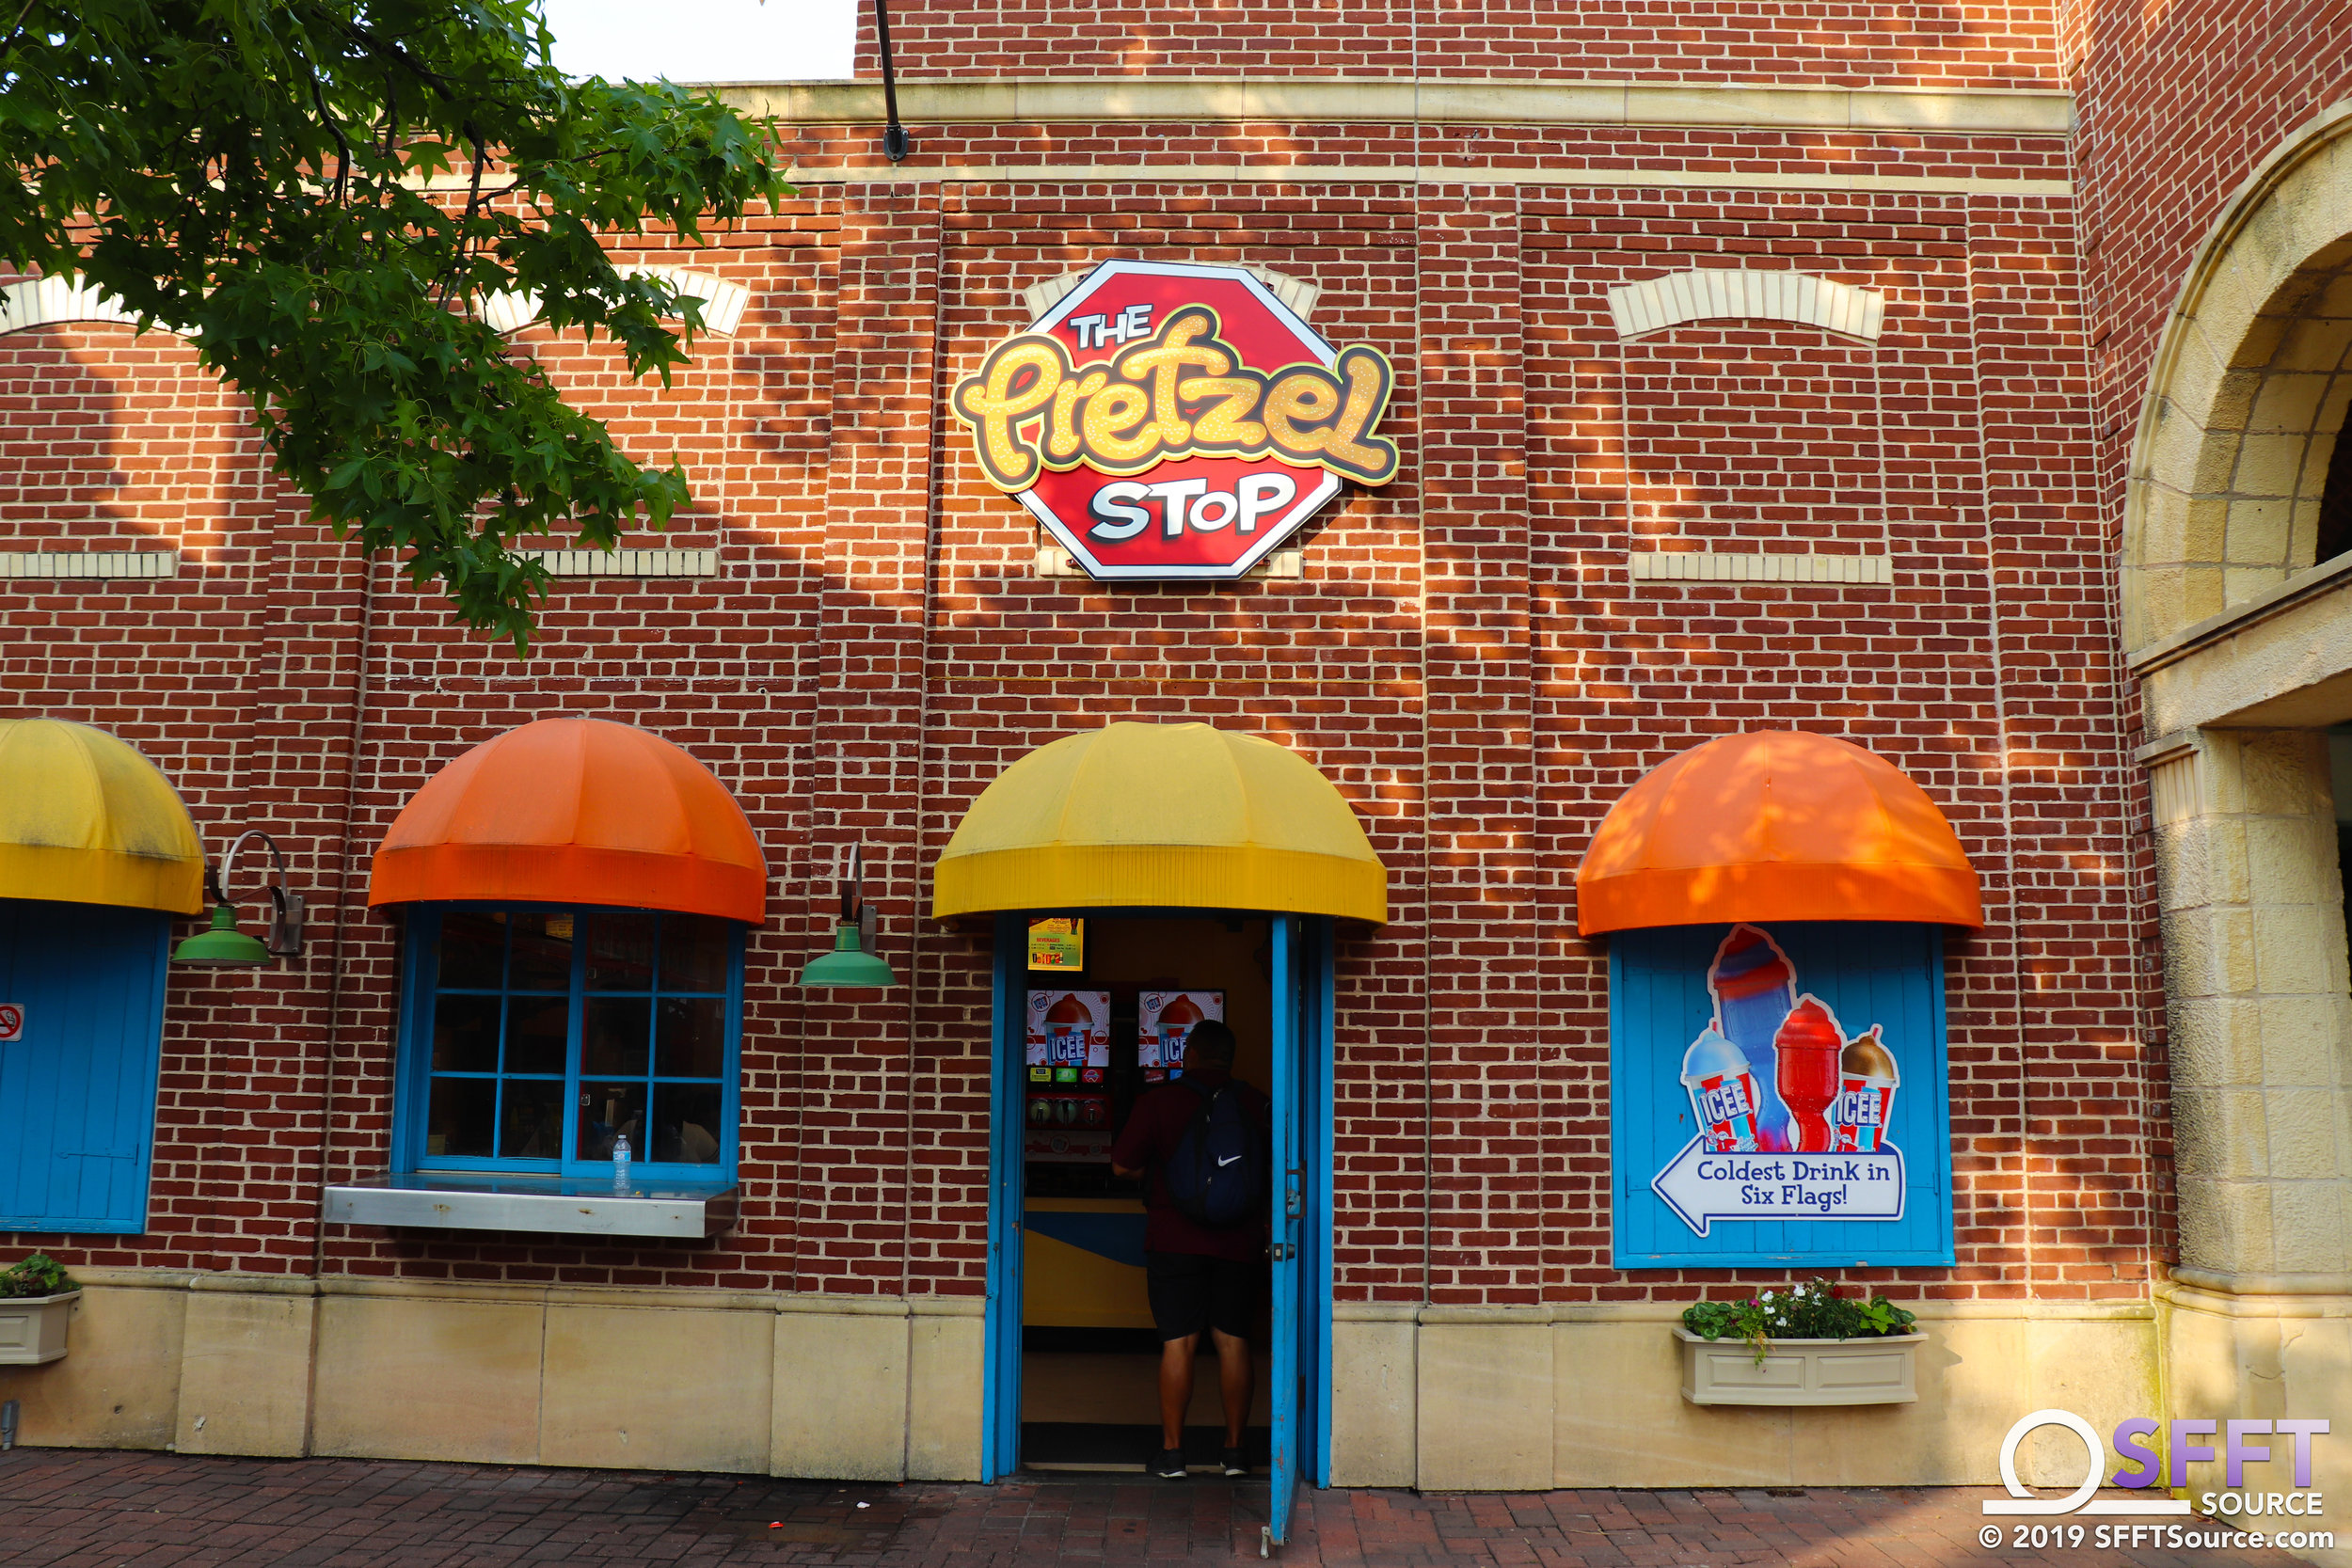 The Pretzel Stop features multiple Dining Pass options.